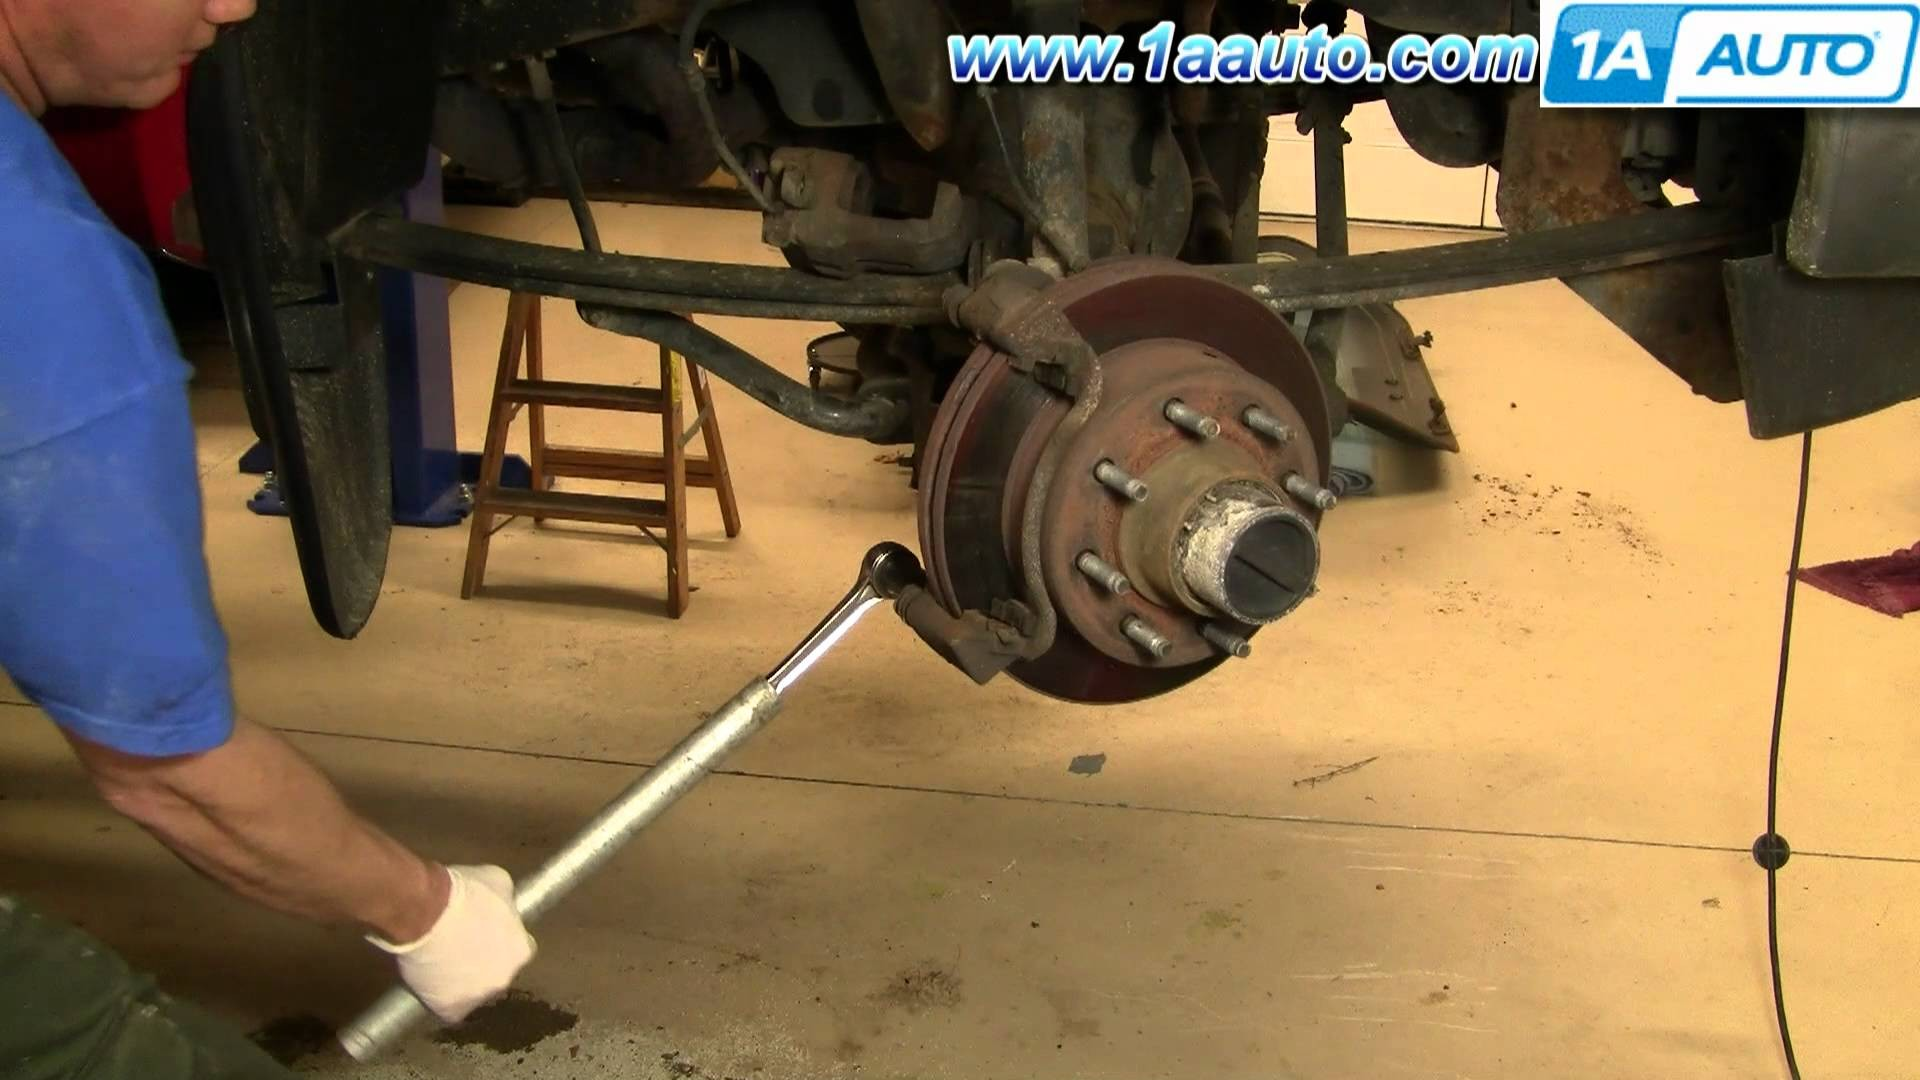 Rear Brake Shoes Diagram How to Install Replace Front Brakes ford F250 F350 Super Duty 00 04 Of Rear Brake Shoes Diagram